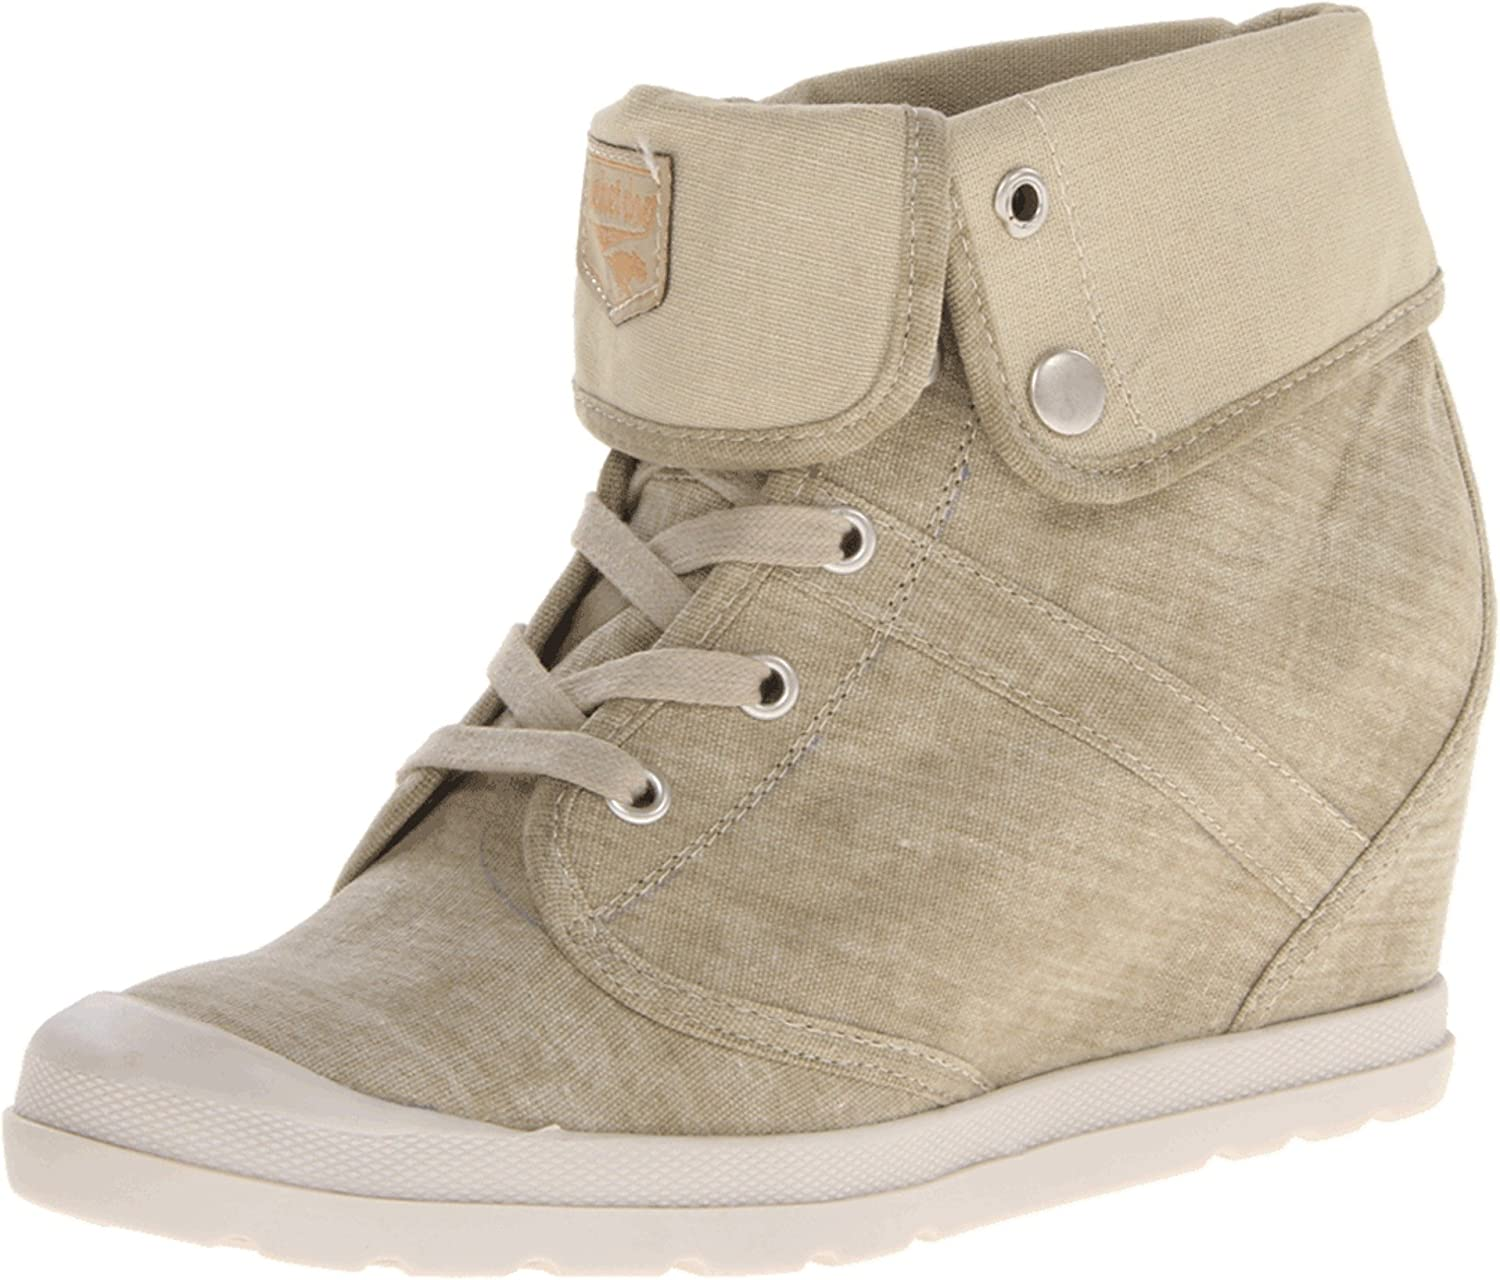 Rocket Dog Women's Frenzy whitehed Canvas High Top Sneaker